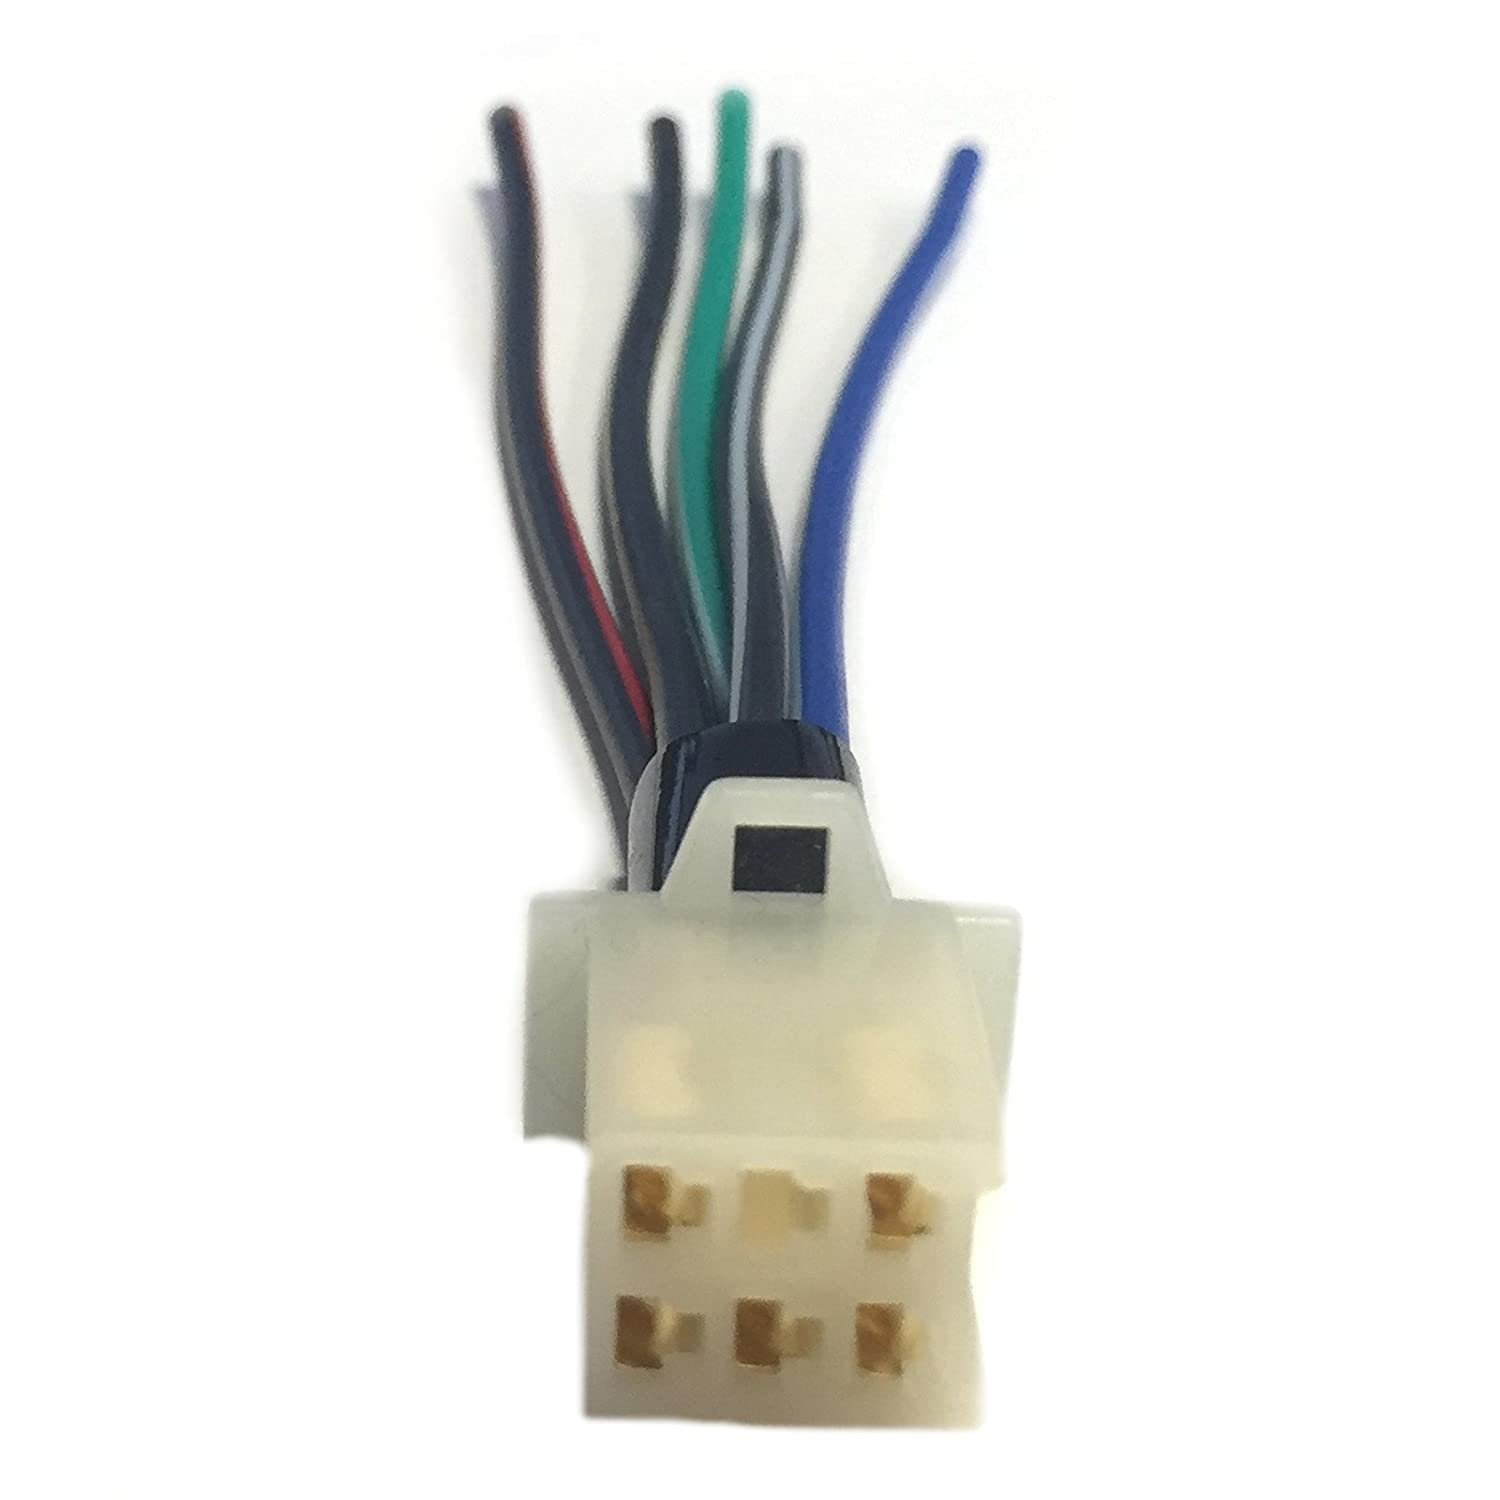 Amazon.com: CDI WIRE CABLE HARNESS PLUG CONNECTOR FOR CDI BOX GY6 CHINESE  SCOOTER MOPED ATV TAOTAO VIP ROKETA JONWAY SUNL TANK BAJA JMSTAR TANK BMS  BENZHOU ...